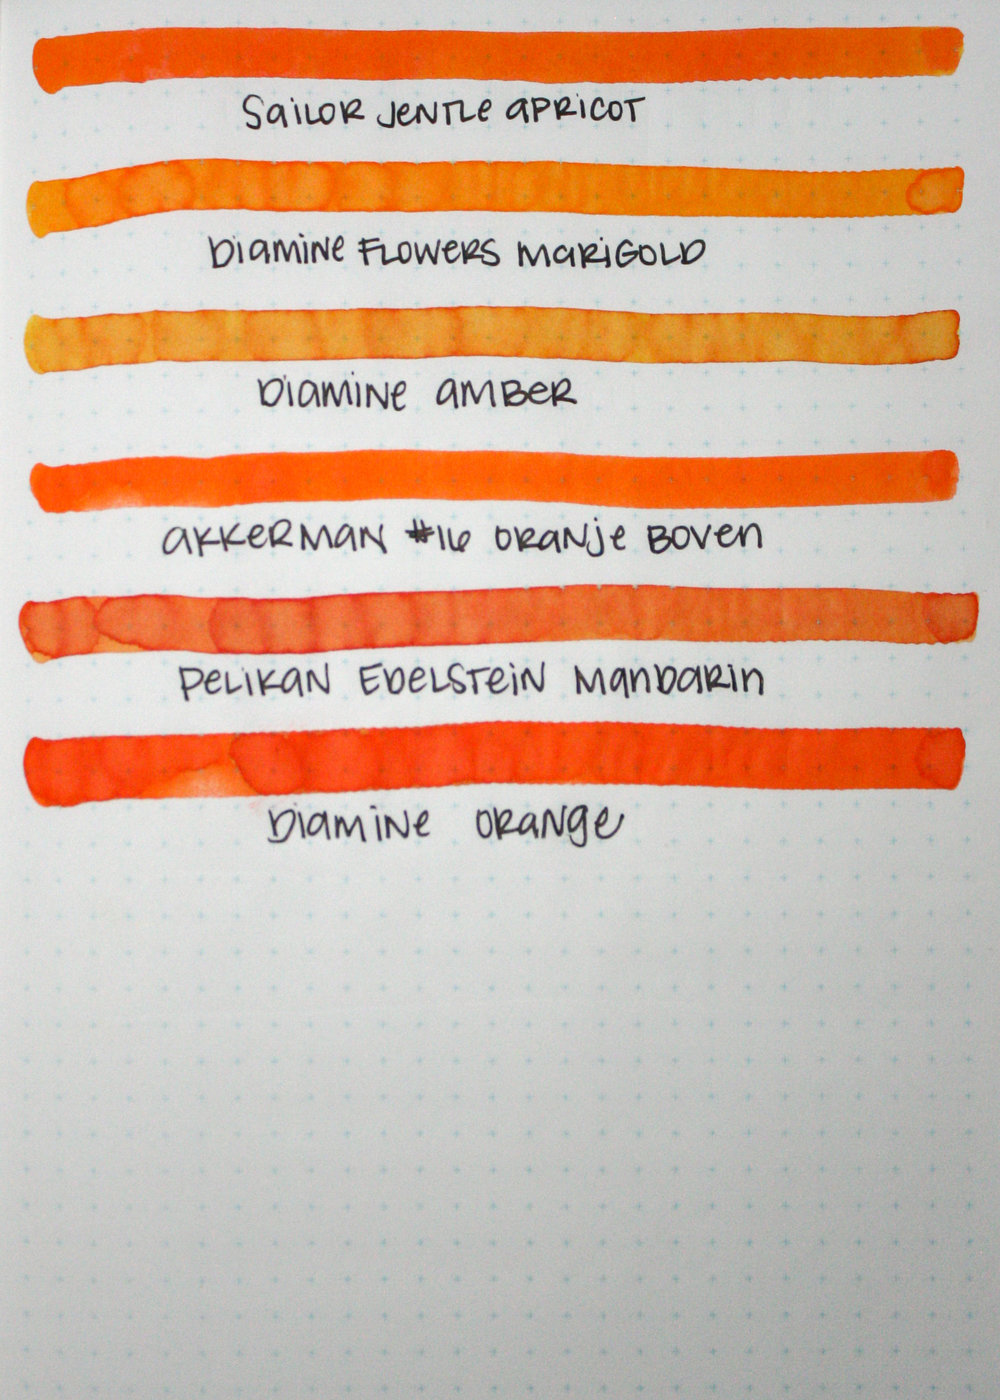 Similar inks... - I would say the closest ink to Apricot is Akkerman #16 Oranje Boven. It doesn't have the silver sheen that Apricot does, but it shows similar tone and saturation.